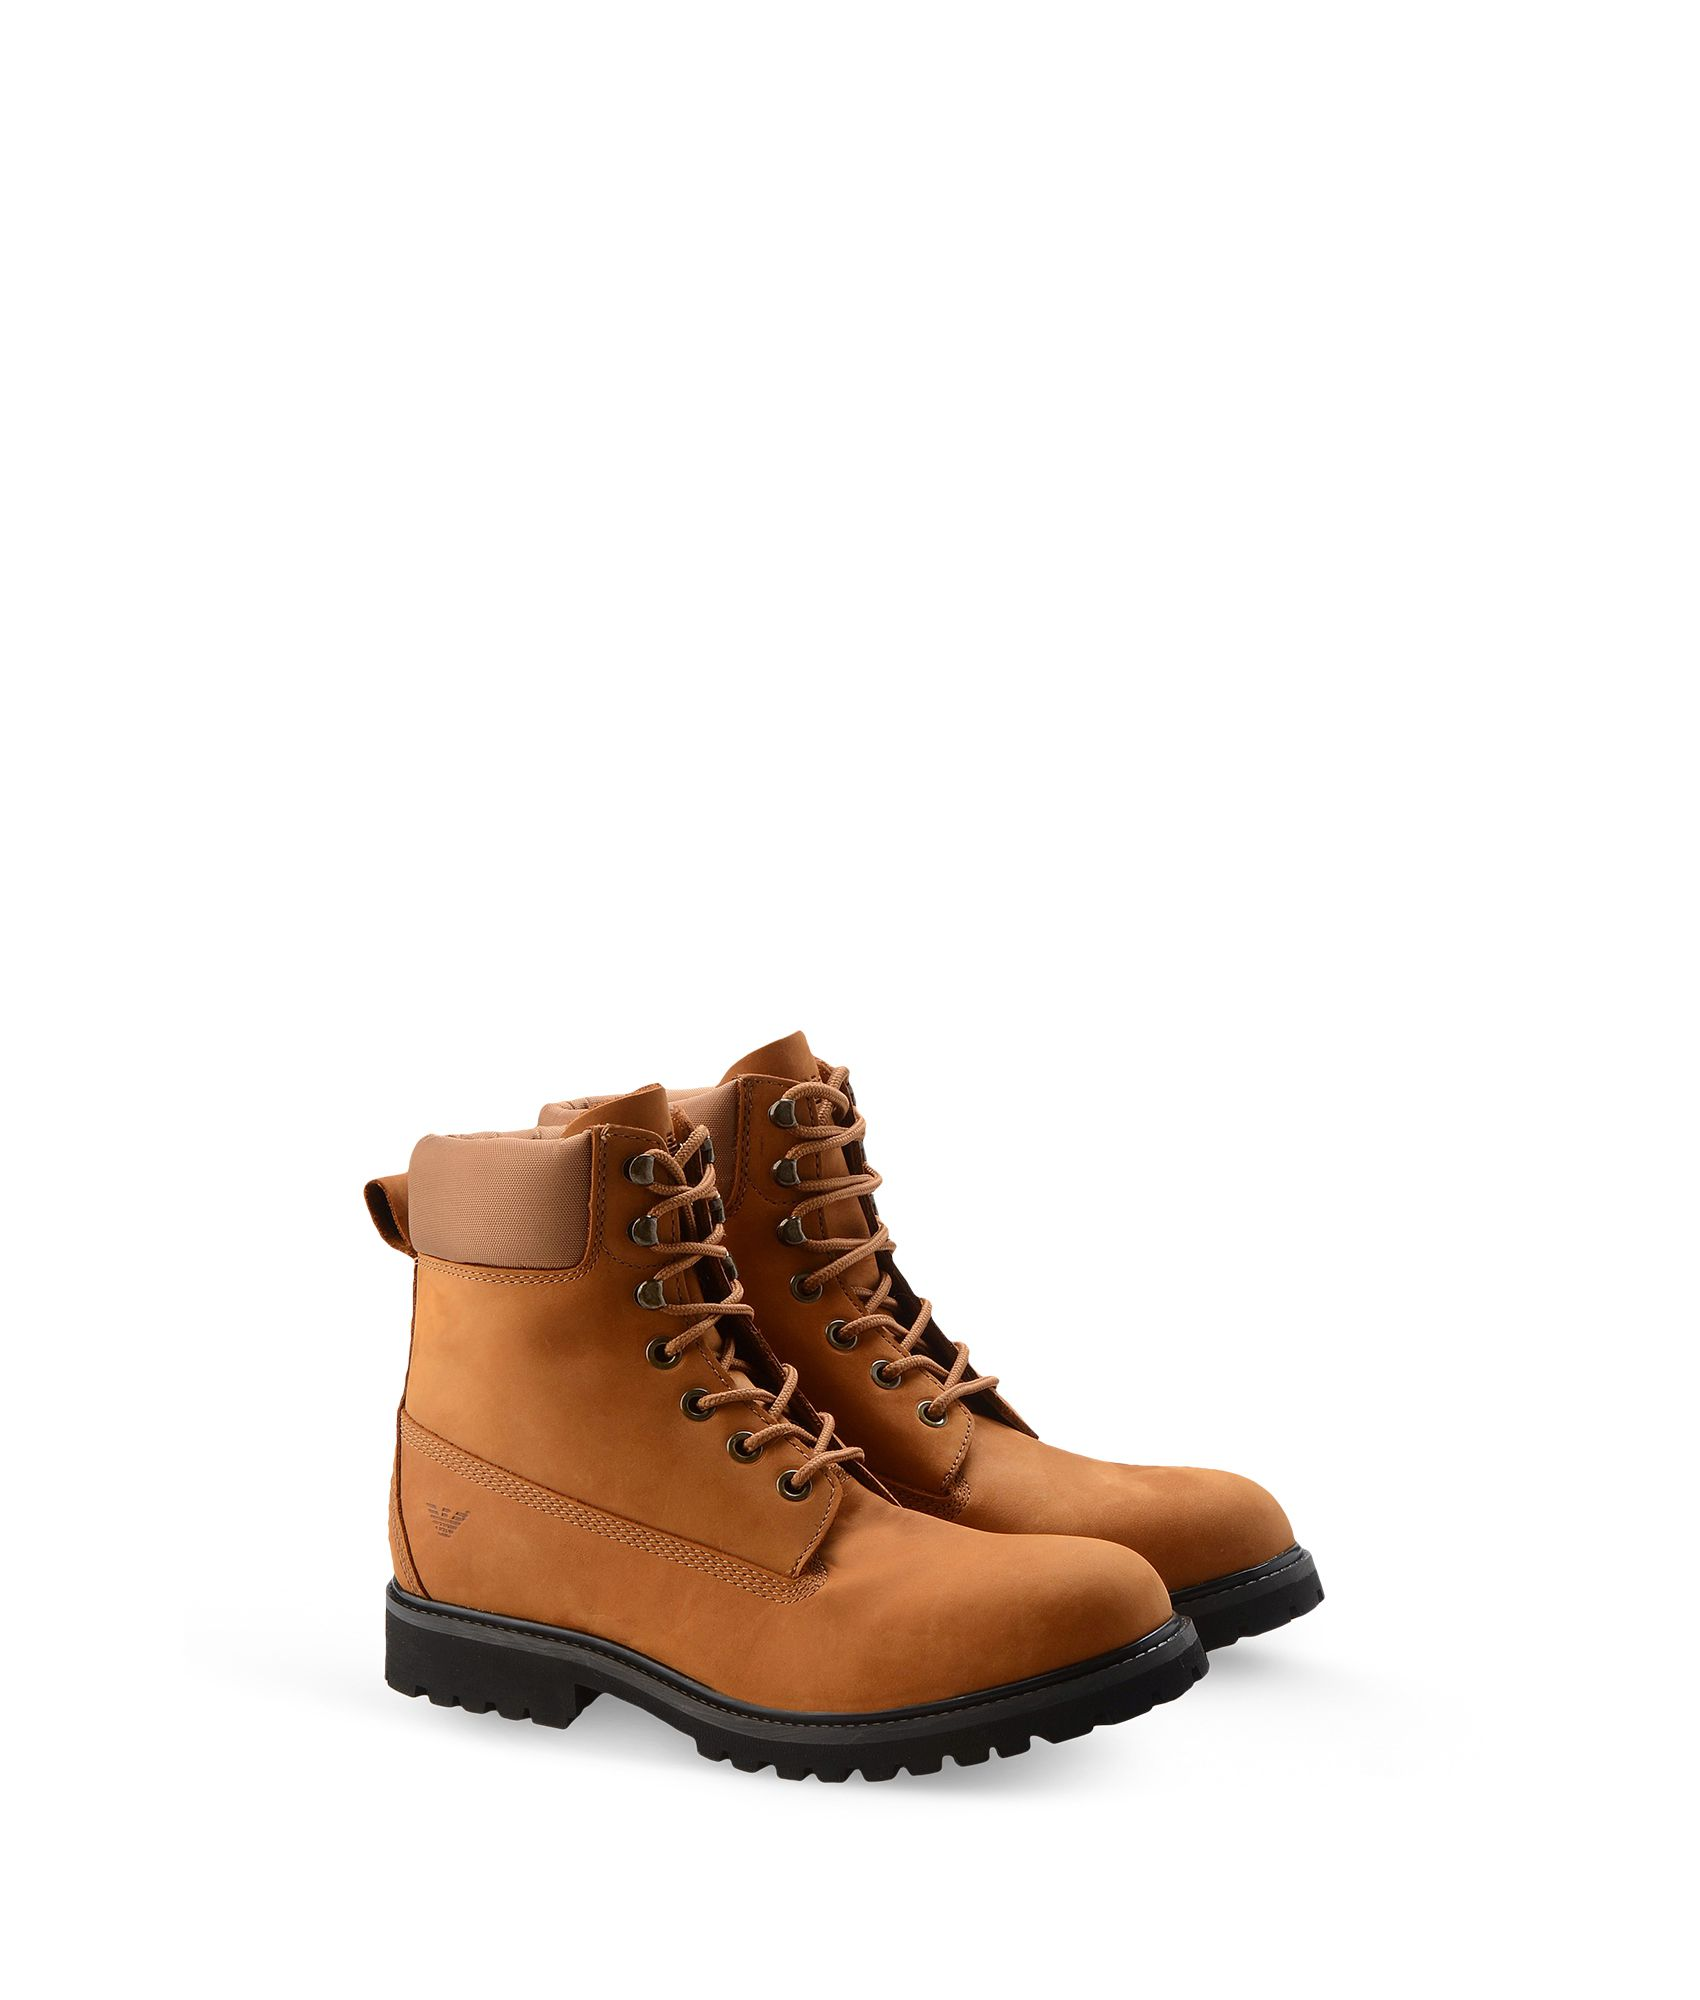 lyst armani jeans combat boots in brown for men